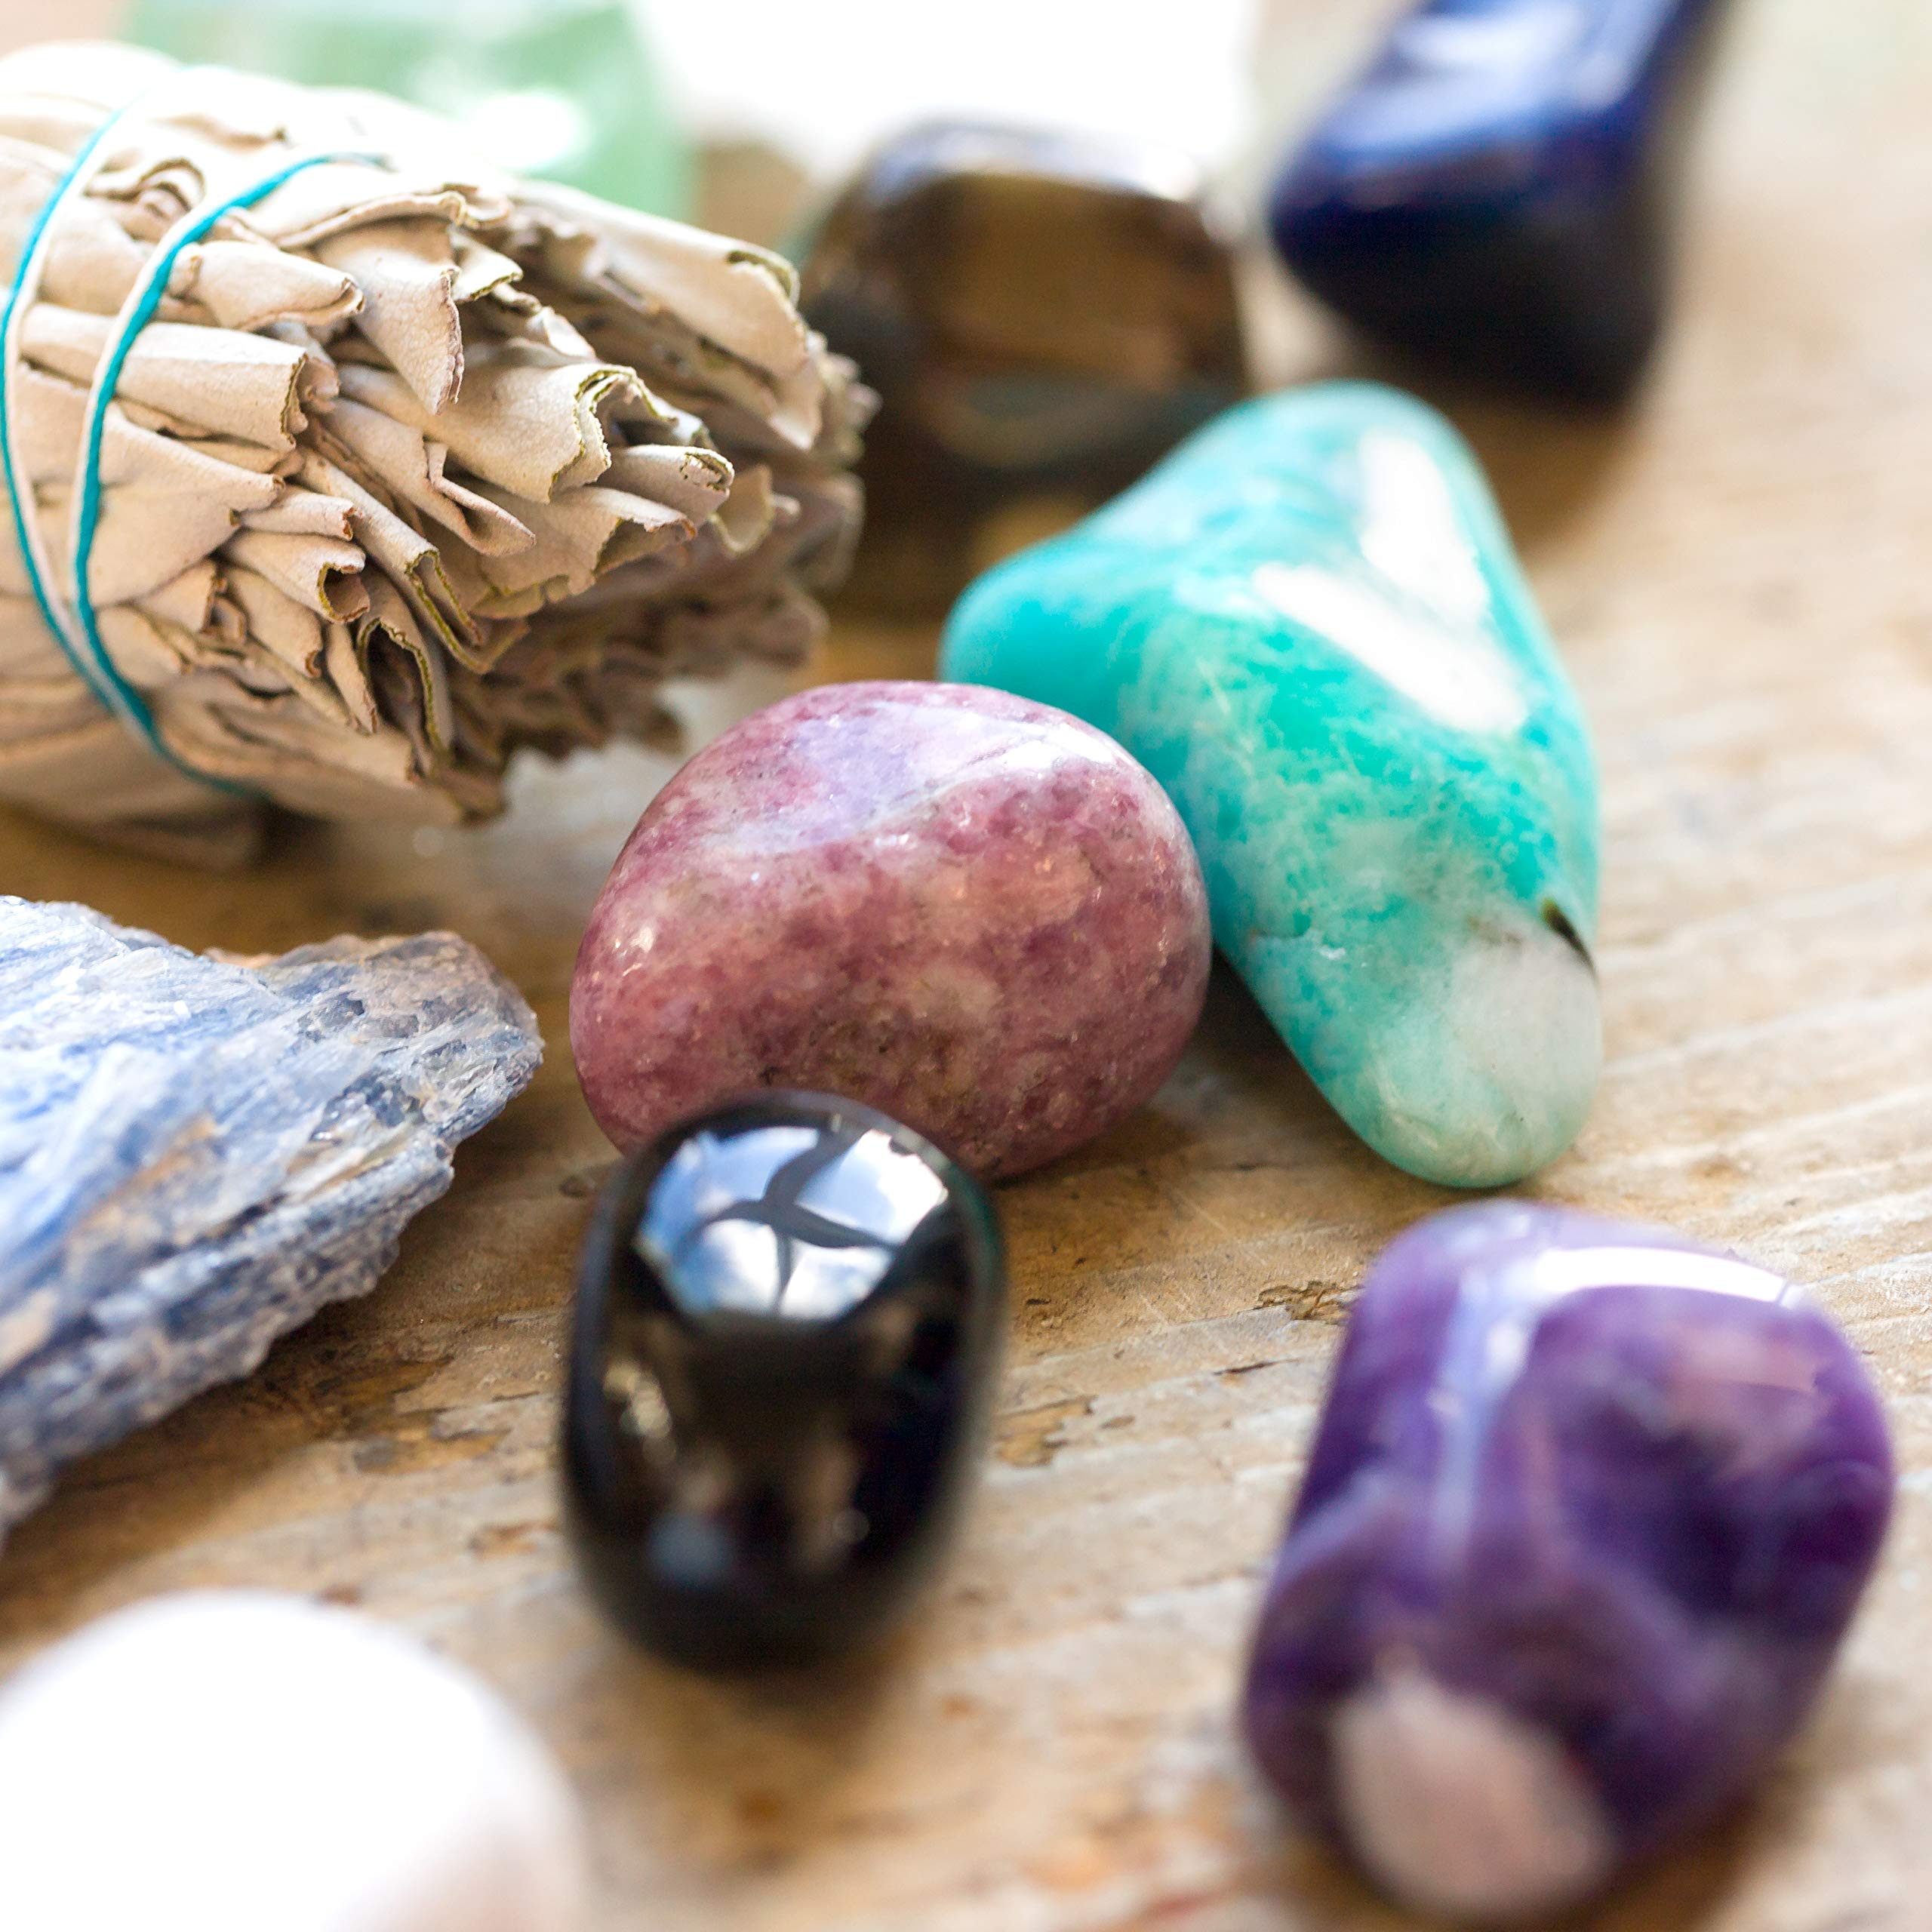 Premium Grade Crystals for Relaxation, Stress Relief ...